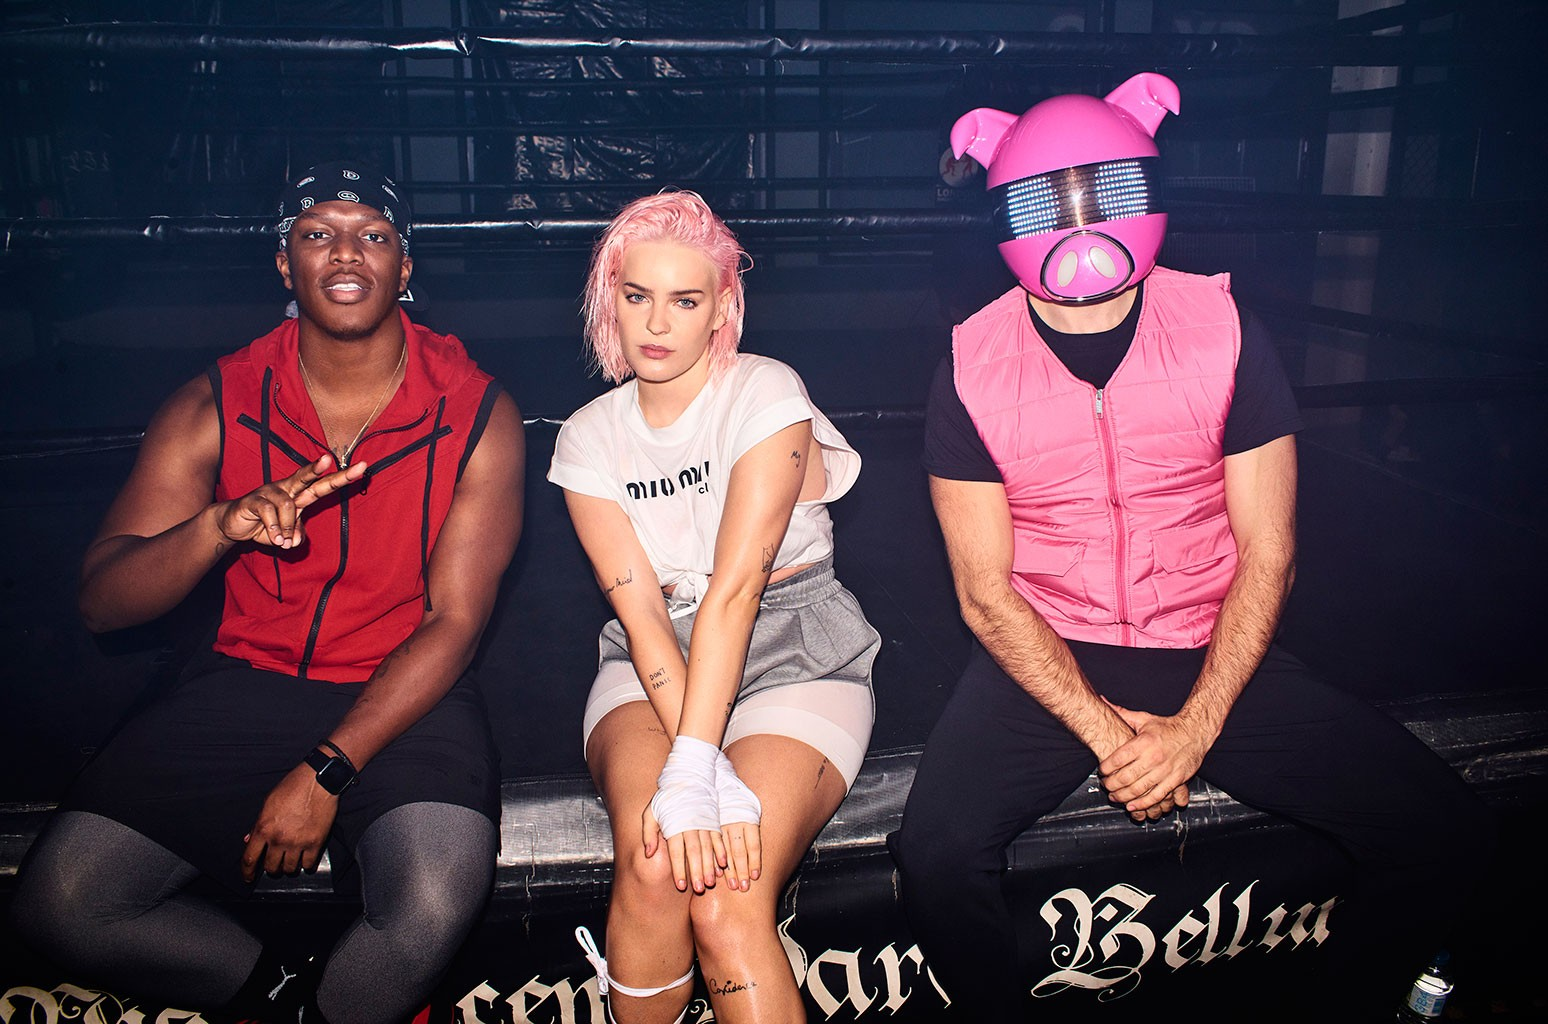 Real-Life Martial Arts Champ Anne-Marie Isn't Playing in Video for KSI & Digital Farm Animals Collab